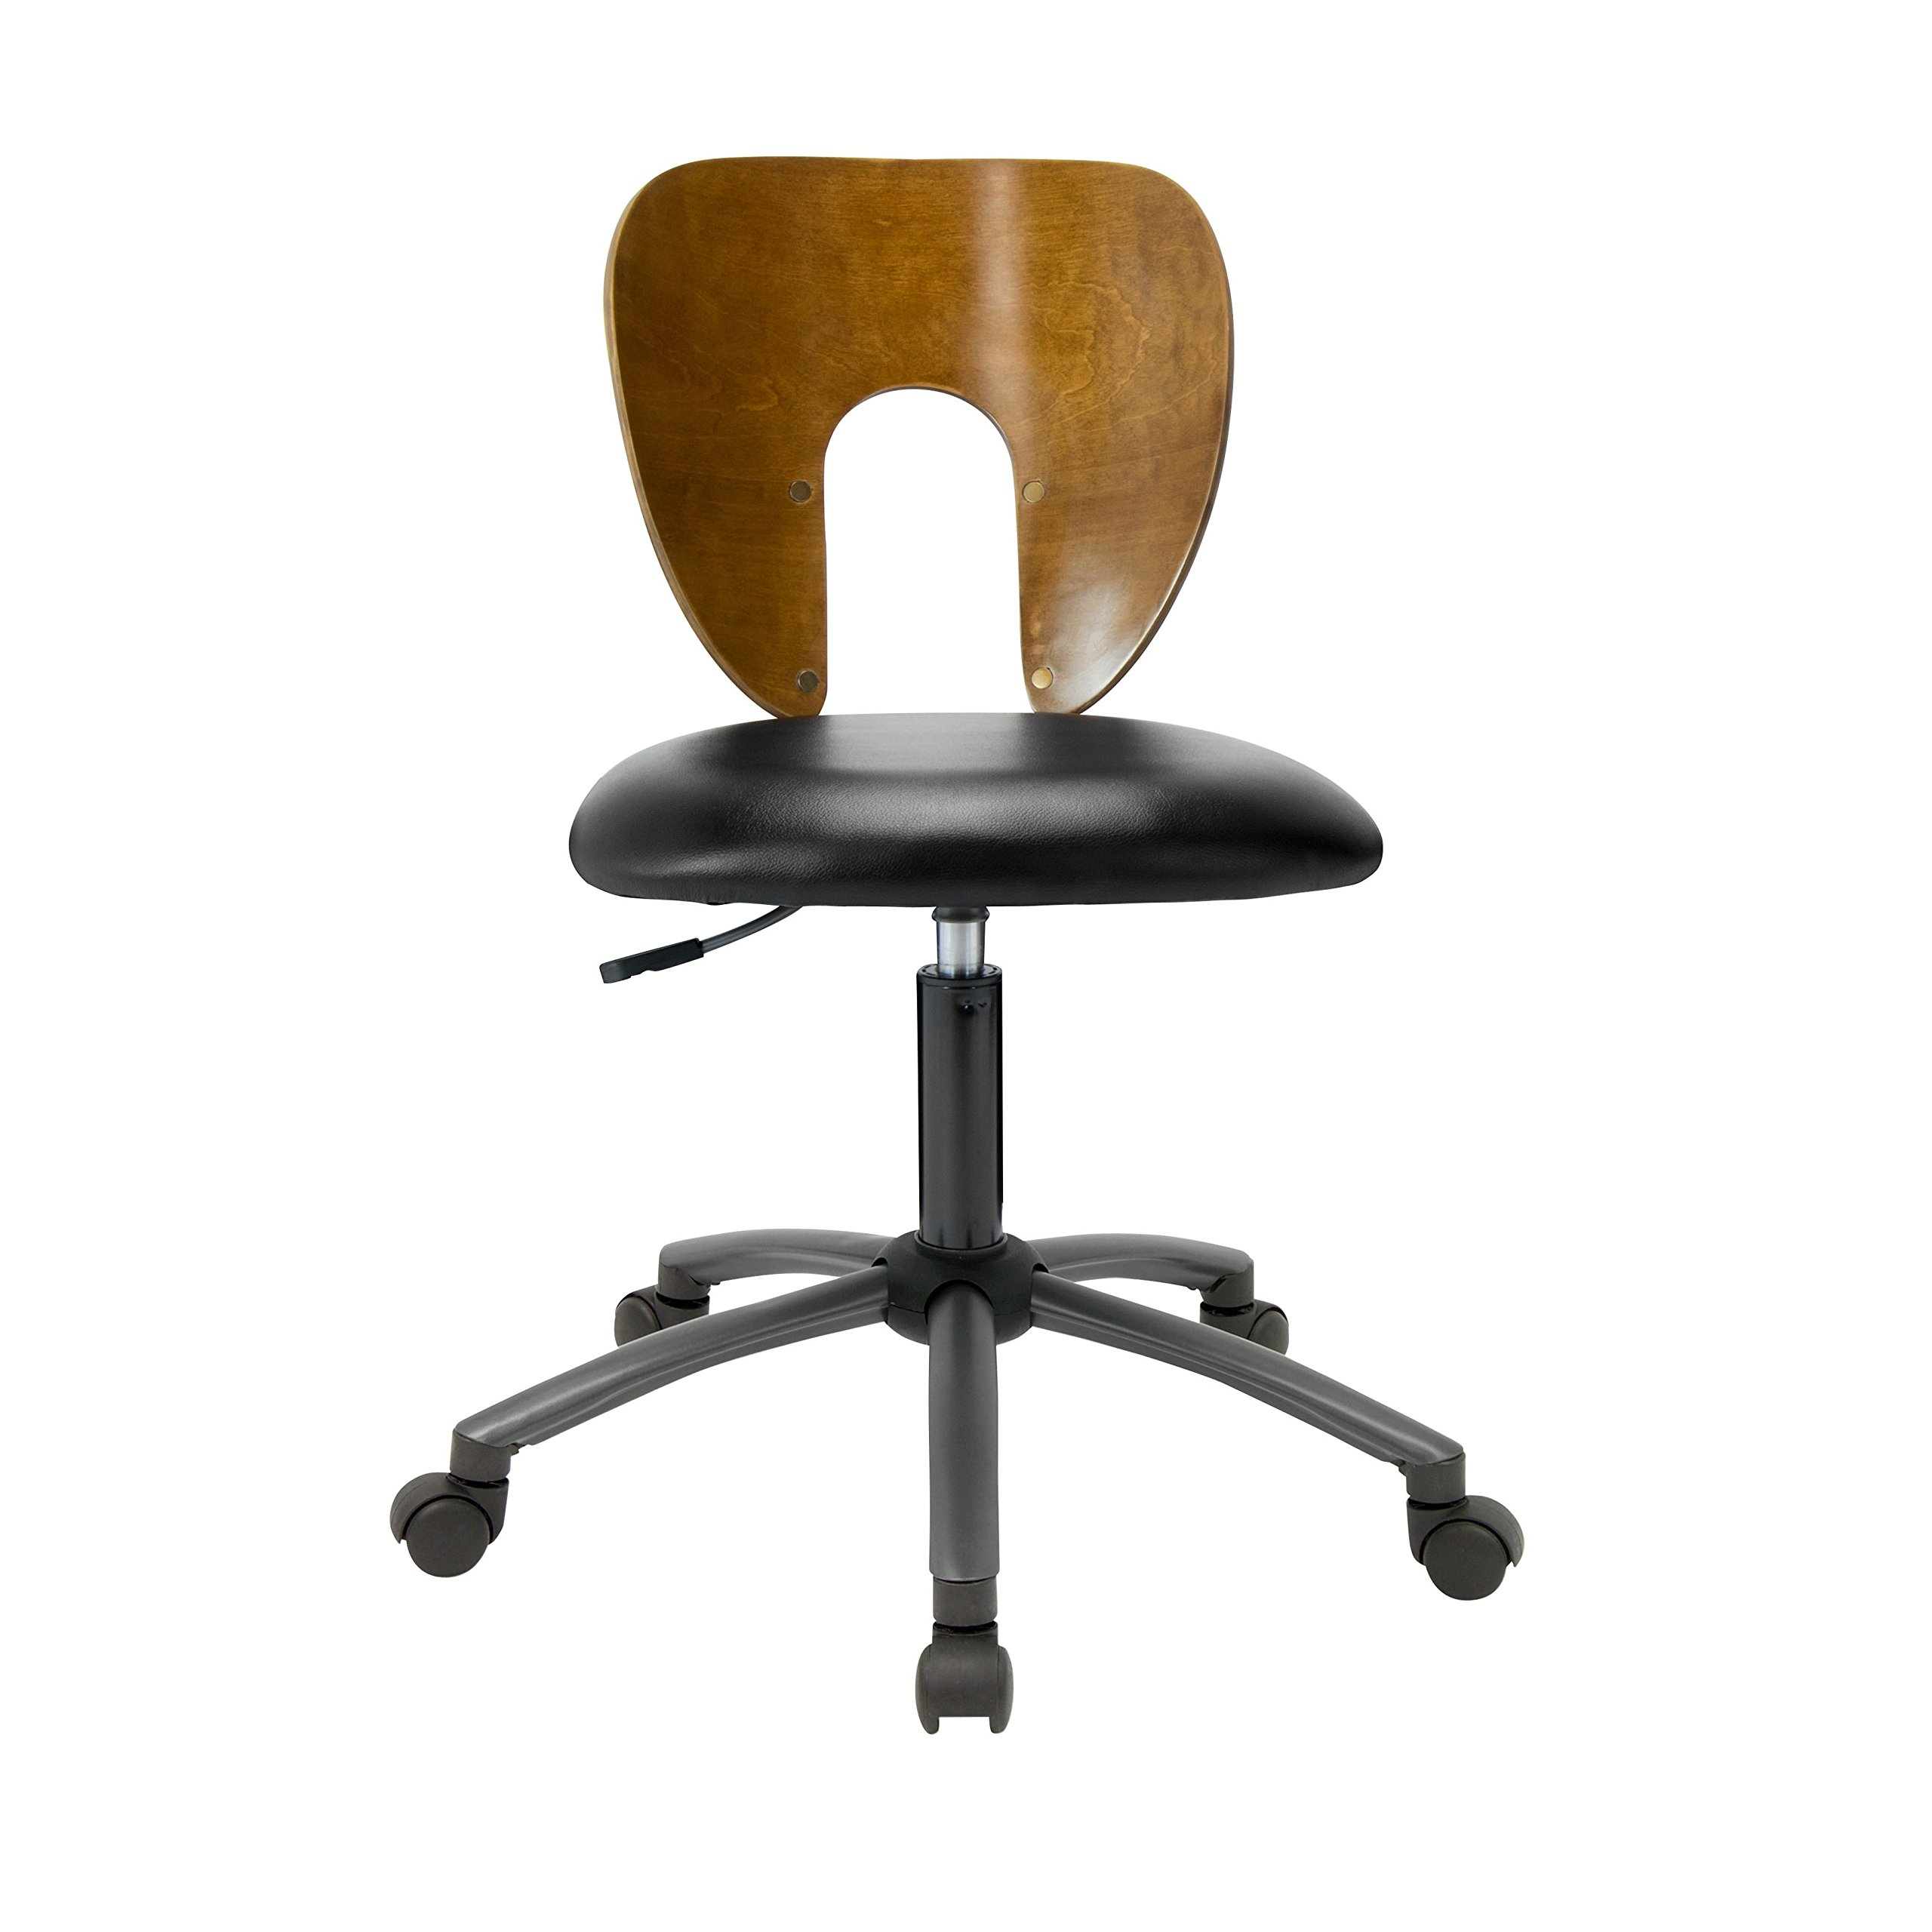 Studio Designs Ponderosa Multi Purpose Chair